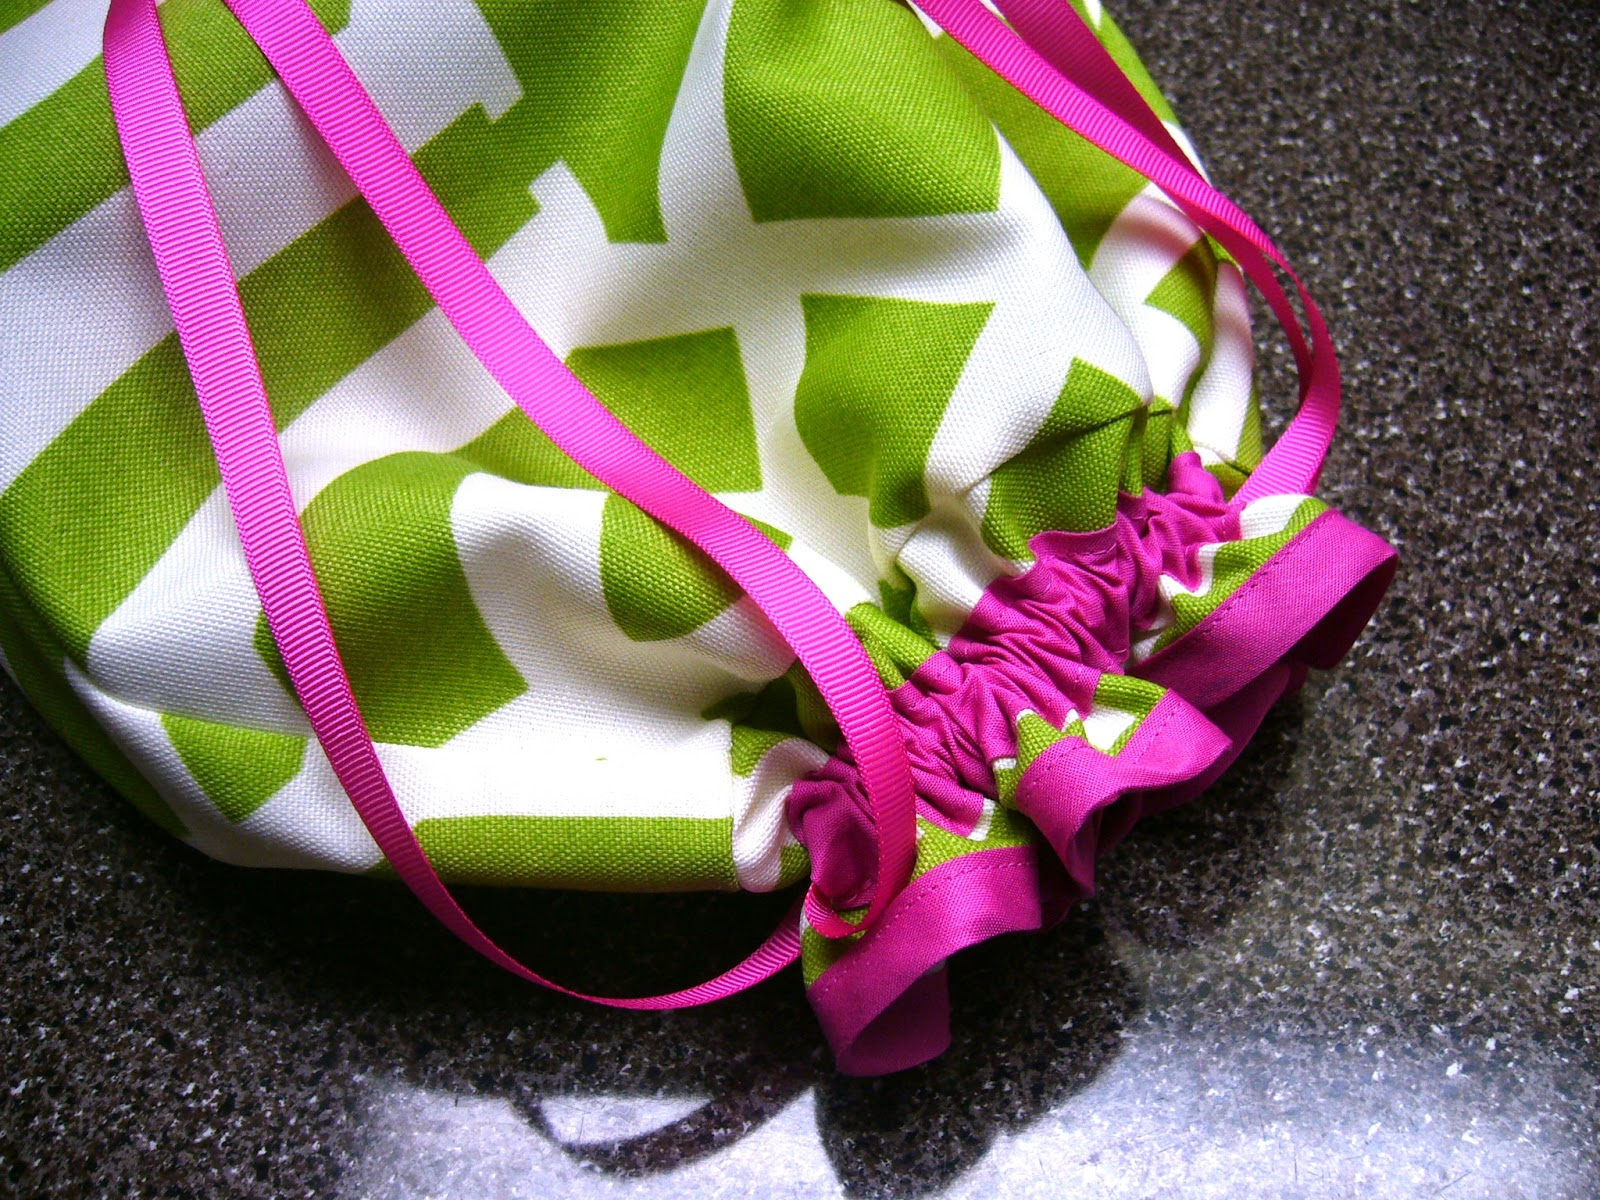 Green and pink drawstring bag for OCC shoe box gift.